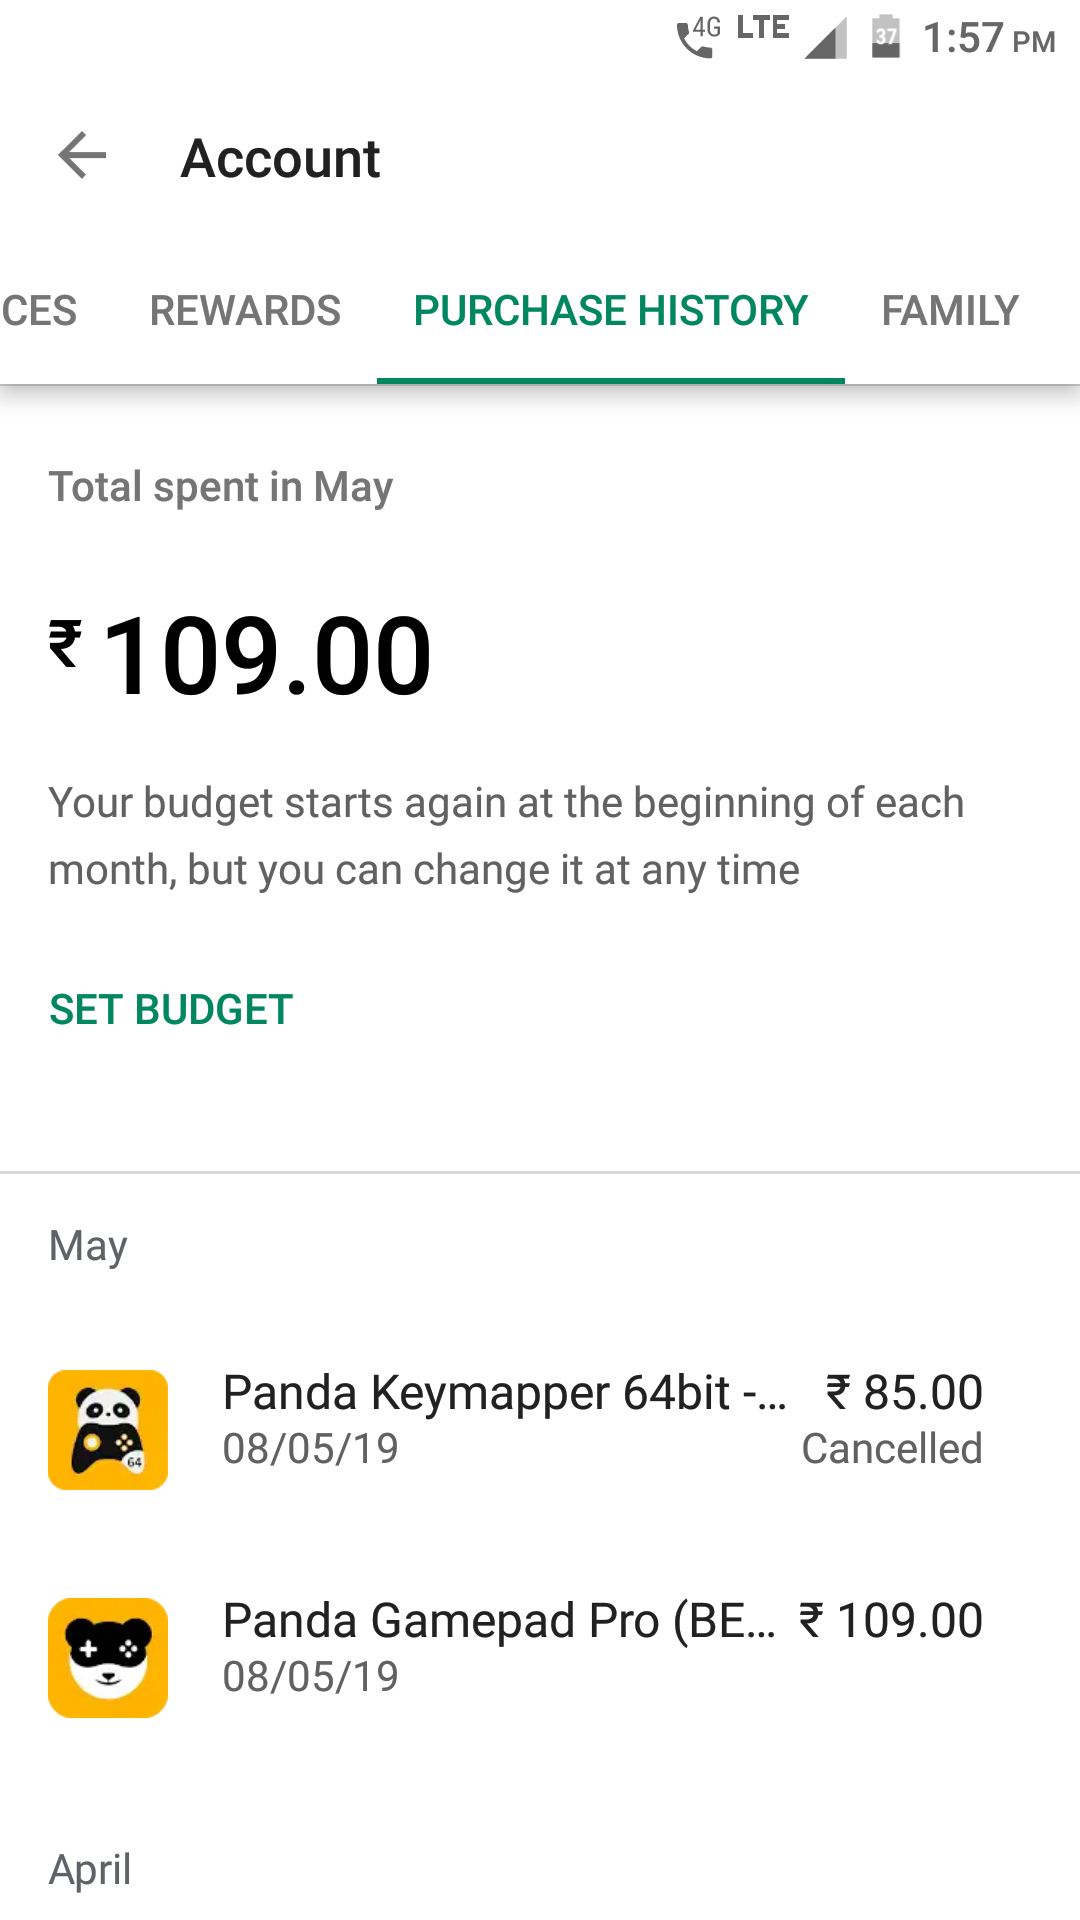 My refunds - Google Assistant Help